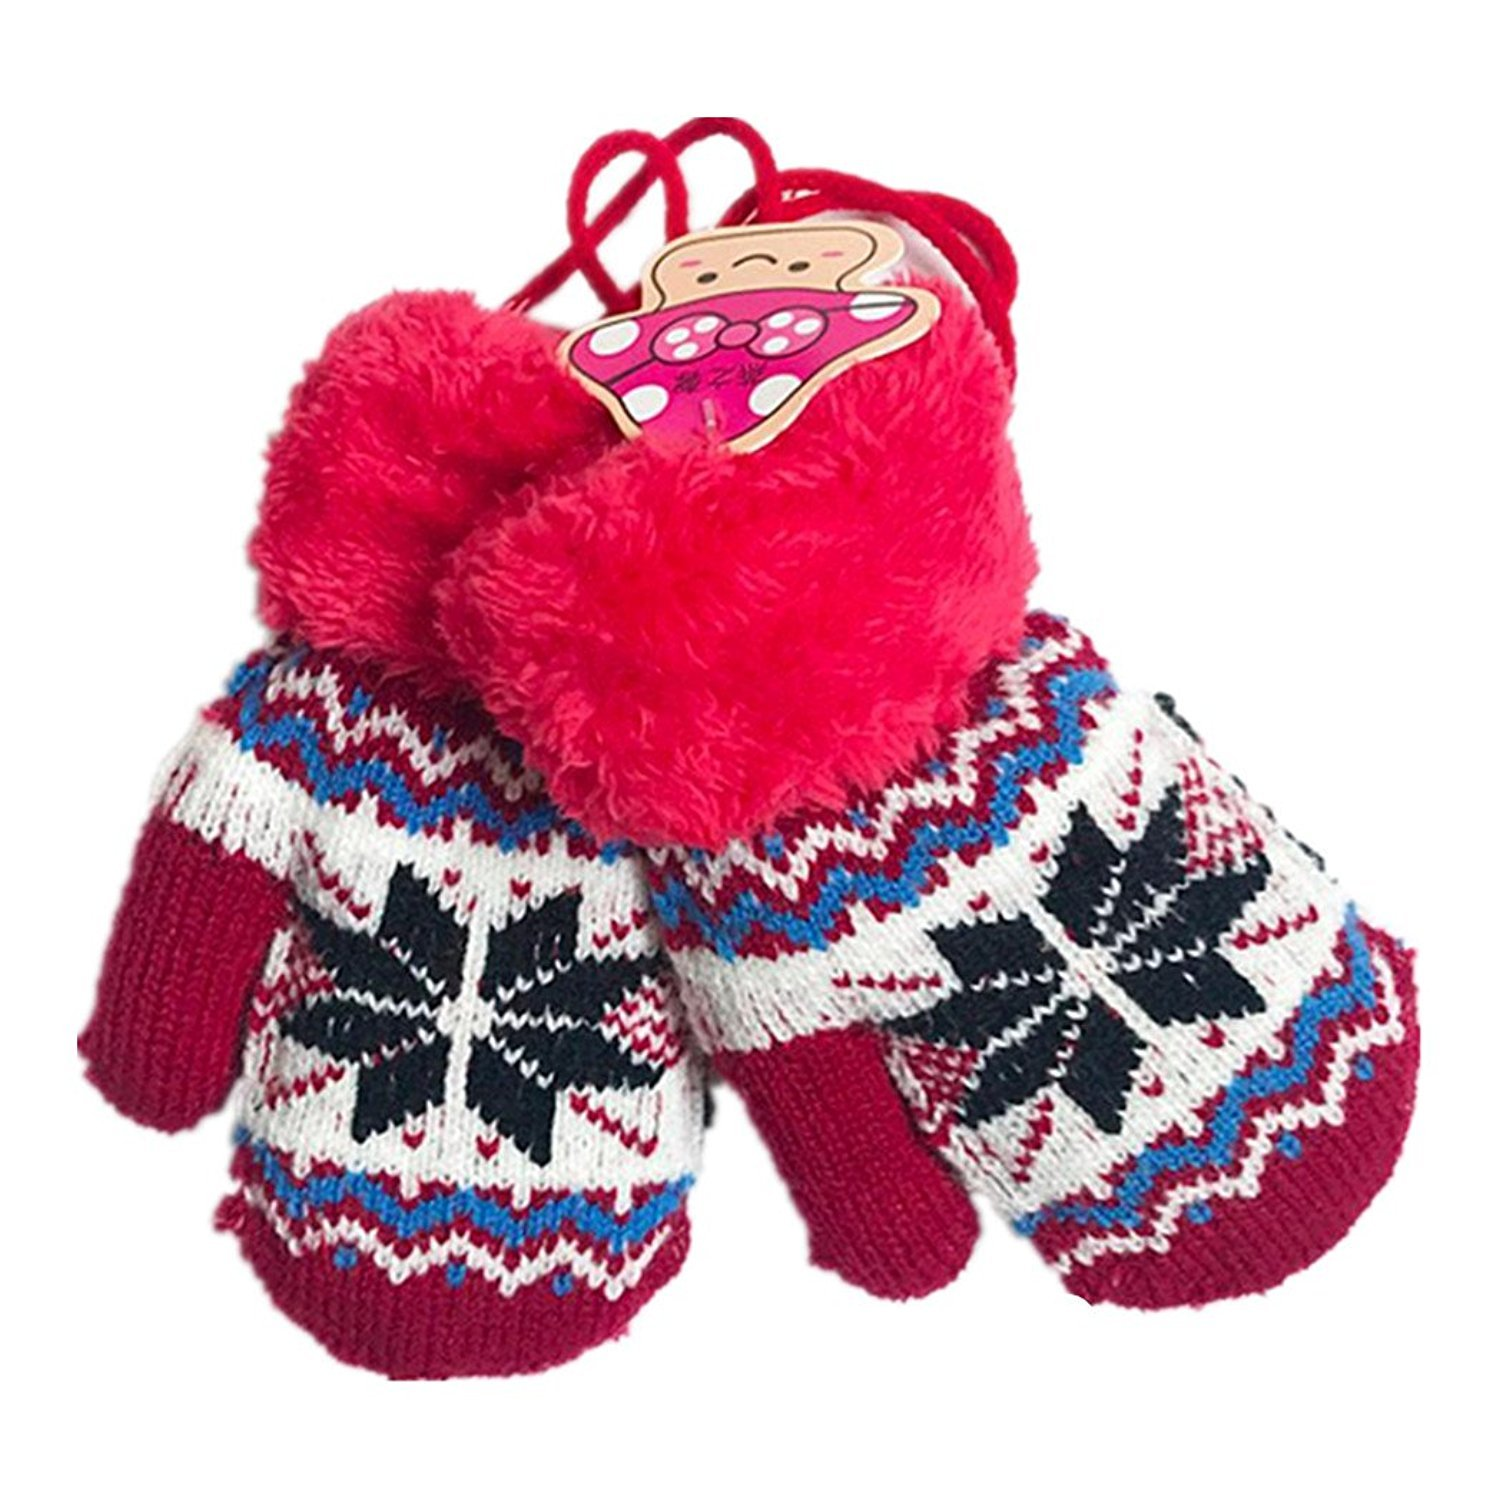 Webla Kids Baby Boy Girl Winter Keep Warm Hanging Neck Full Fingers Snowflake Gloves Mittens For 1-4 Years Old MIA-113014